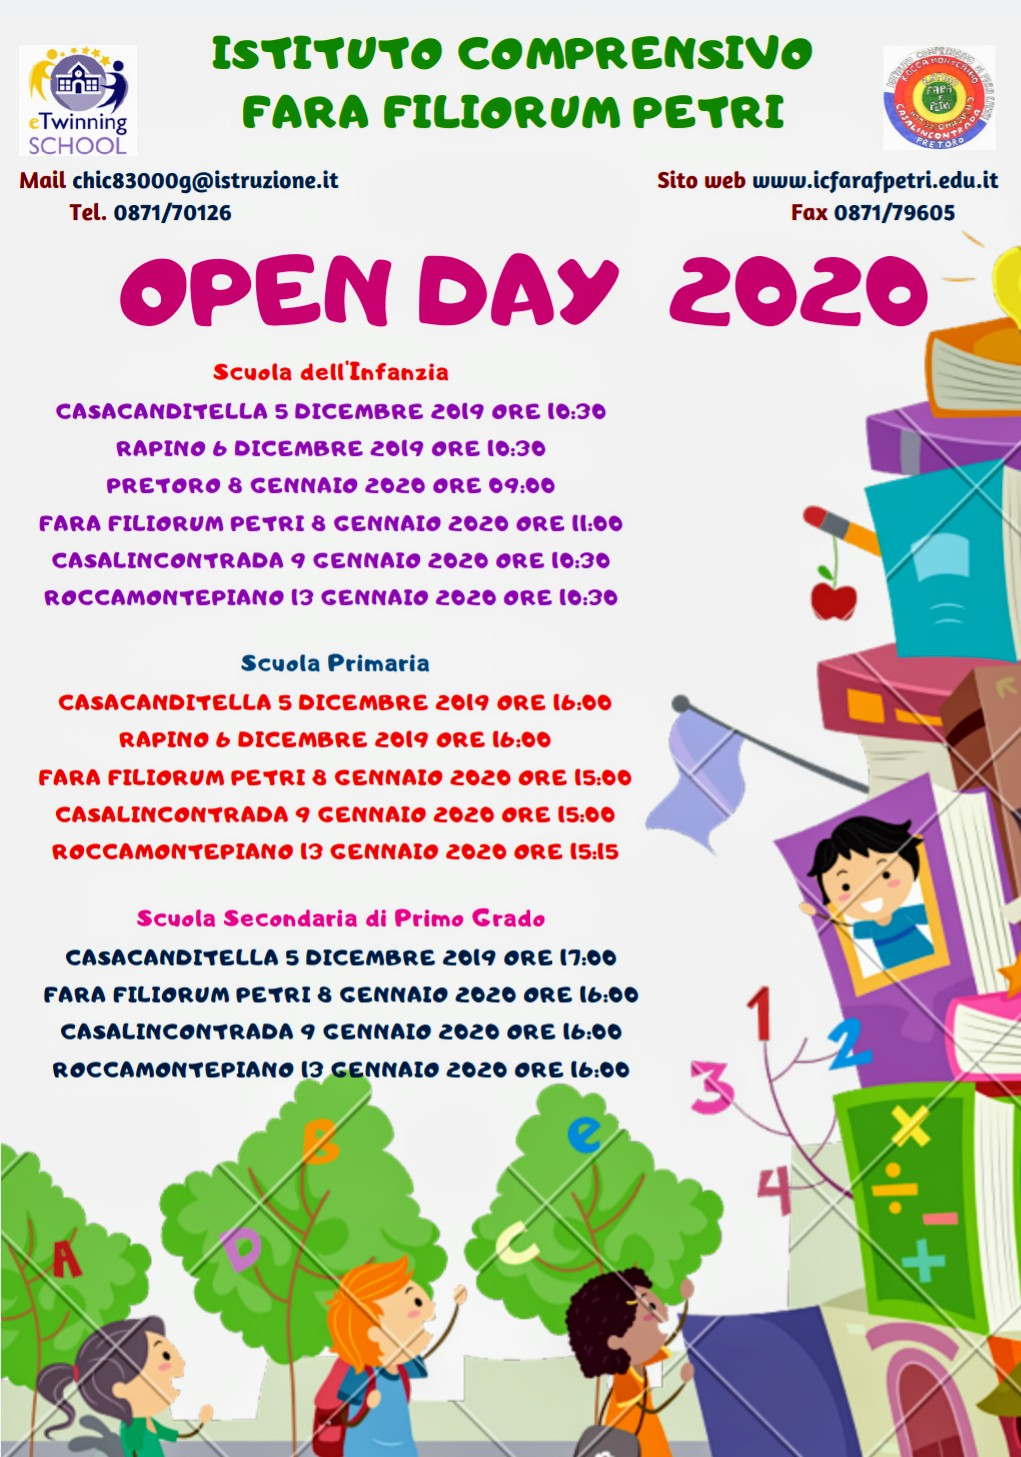 OPEN DAY 2020!